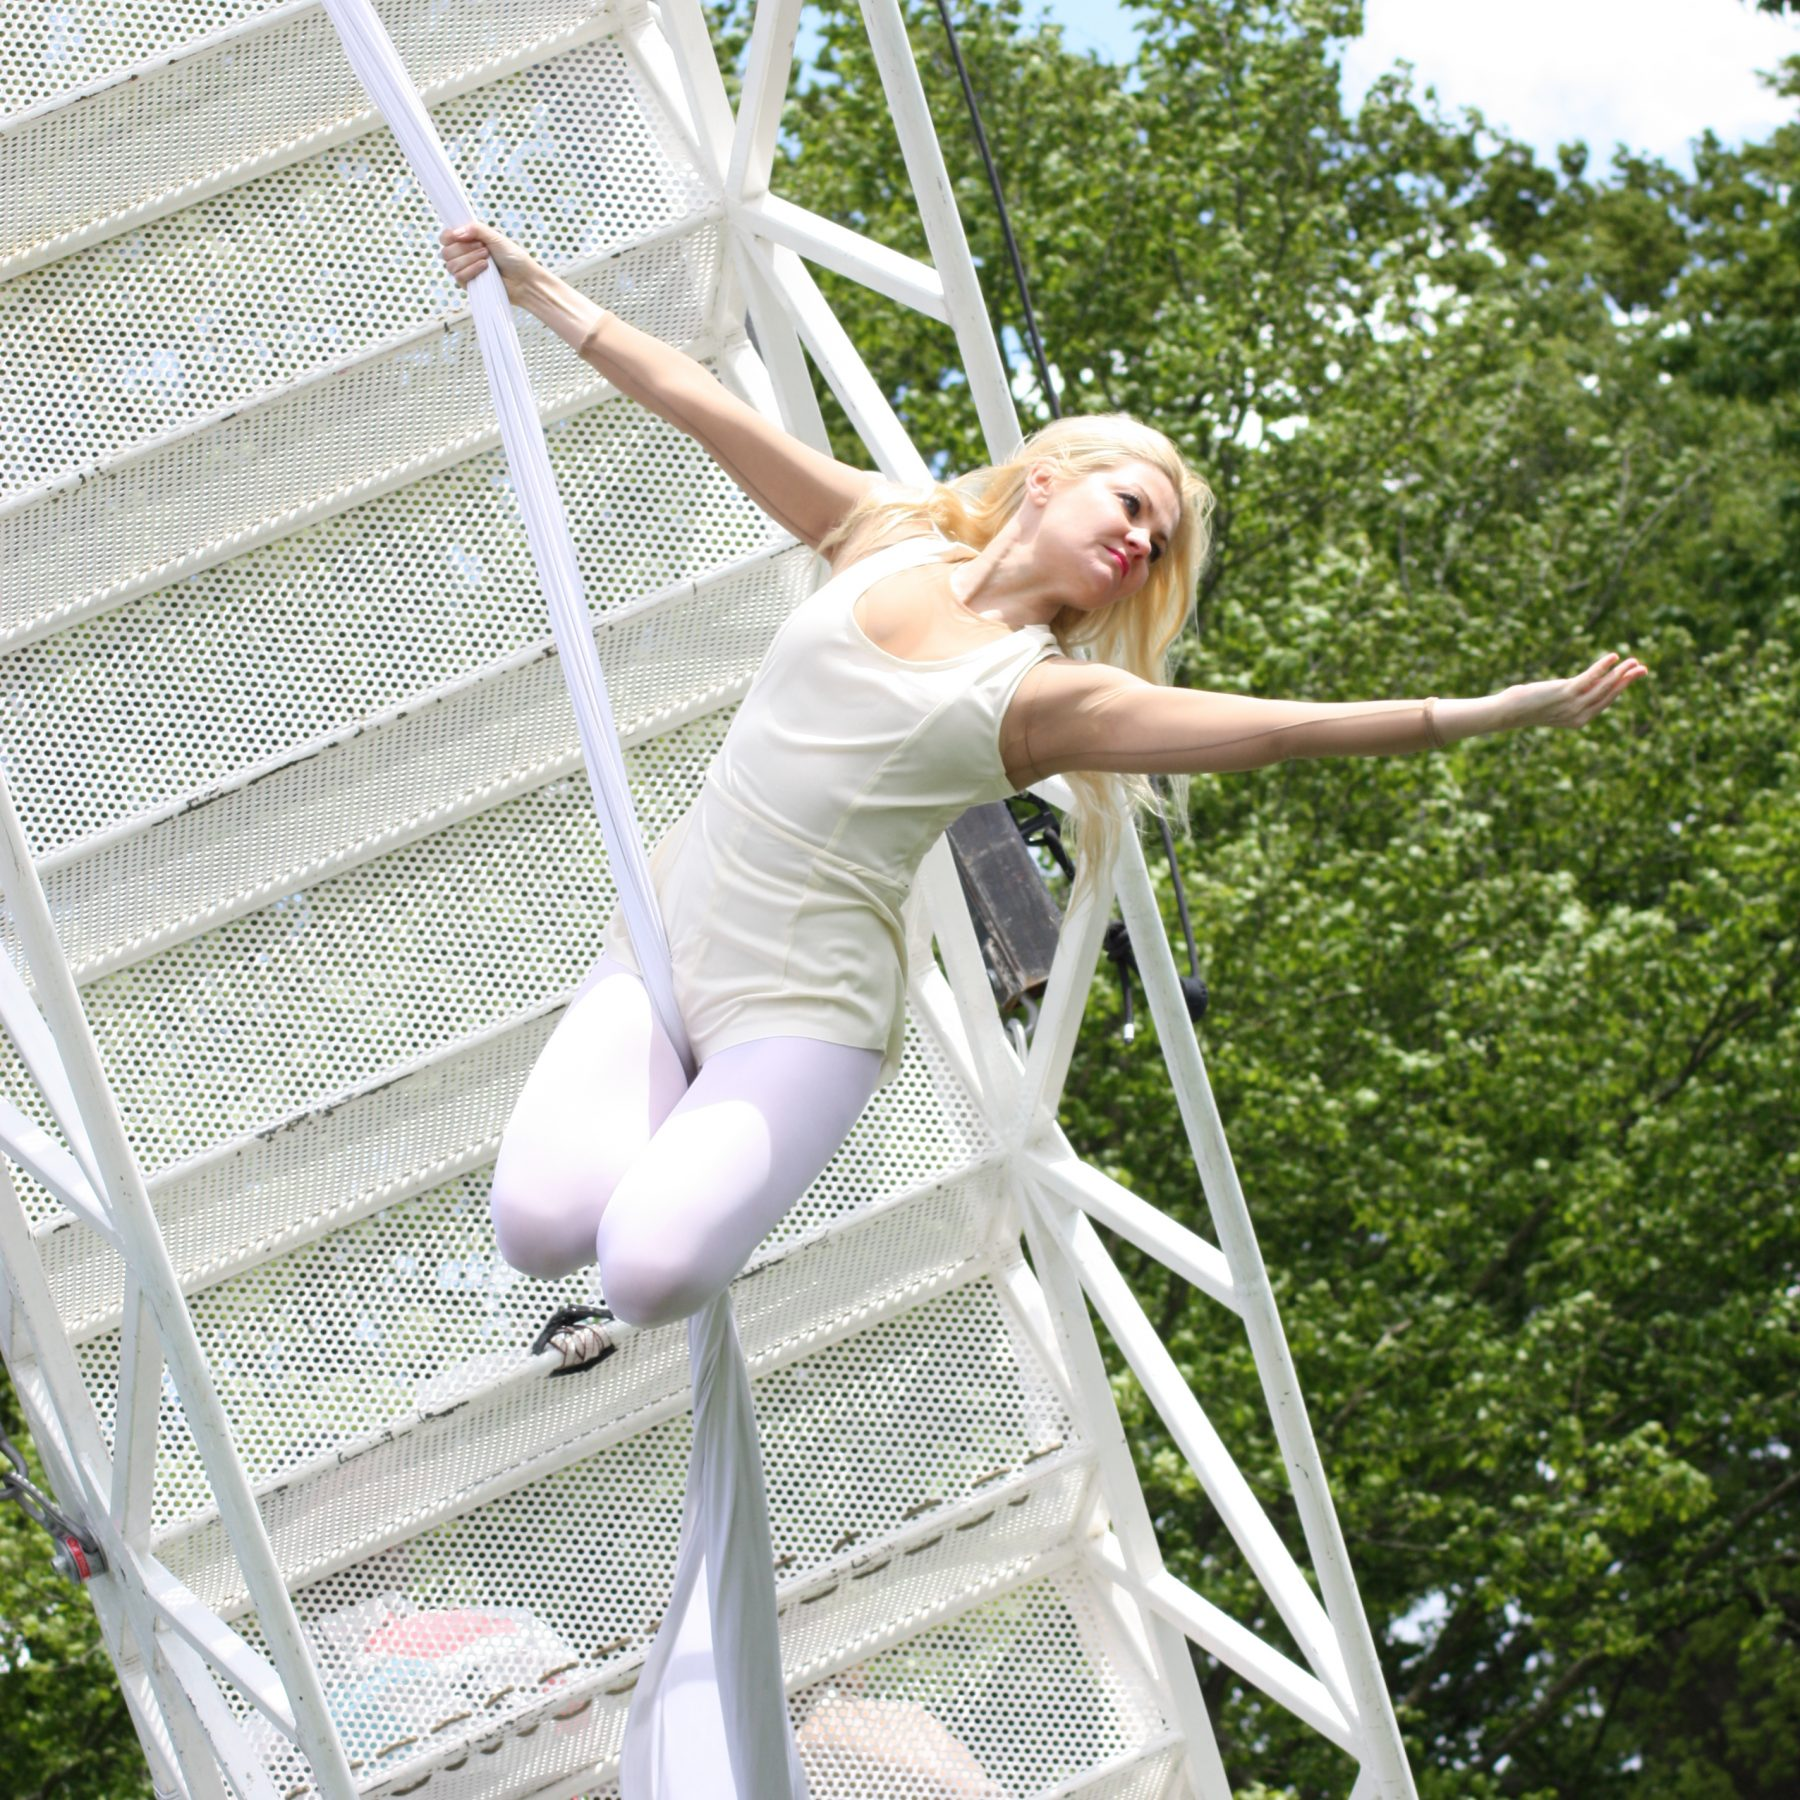 Karina wearing white, swings from a white aerial silk, her blonde hair flying and arm outstretched. The Weighting show bridge is behind her.